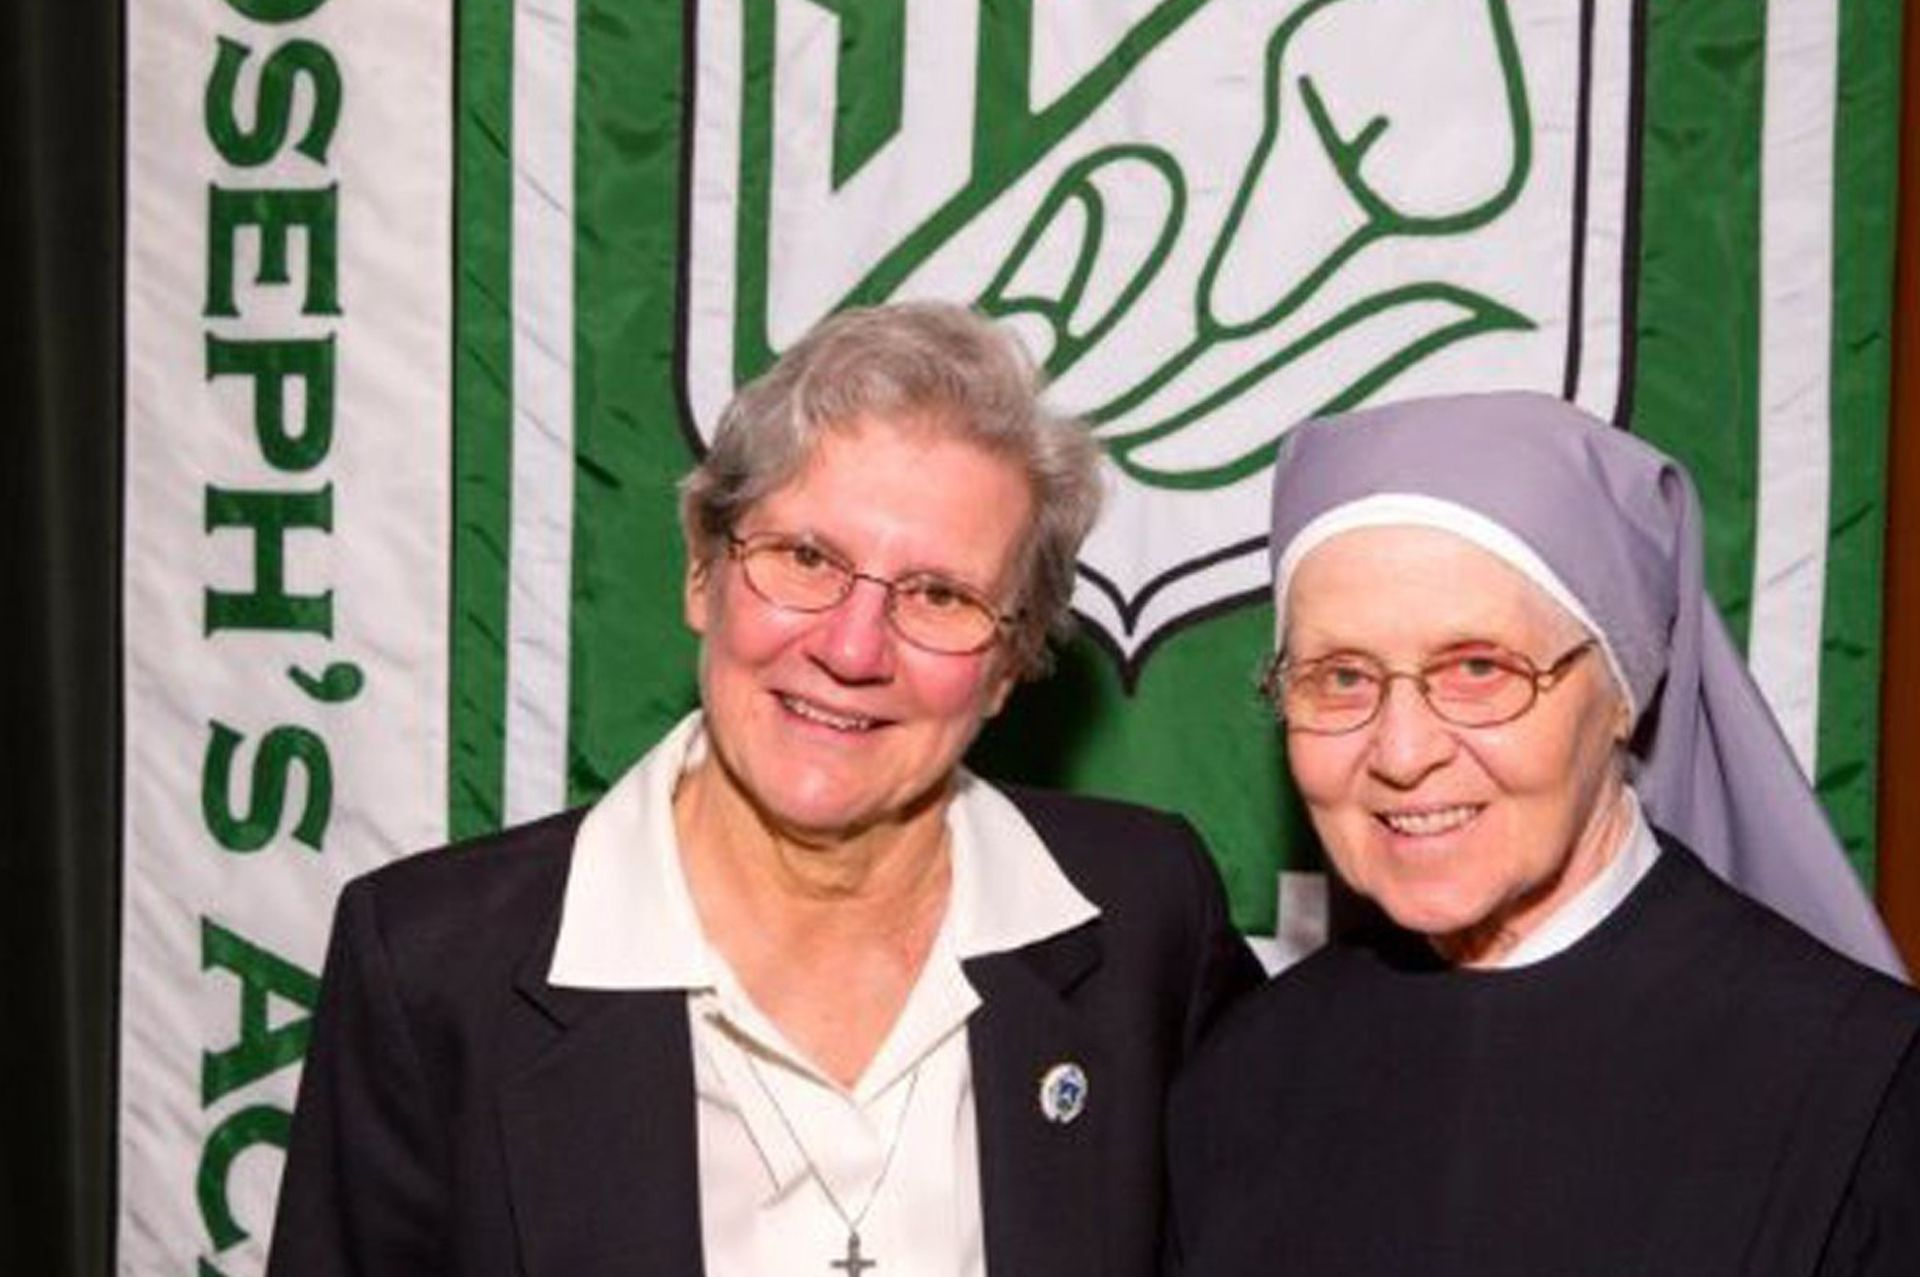 Sr. Volk and Sr. Cyrille